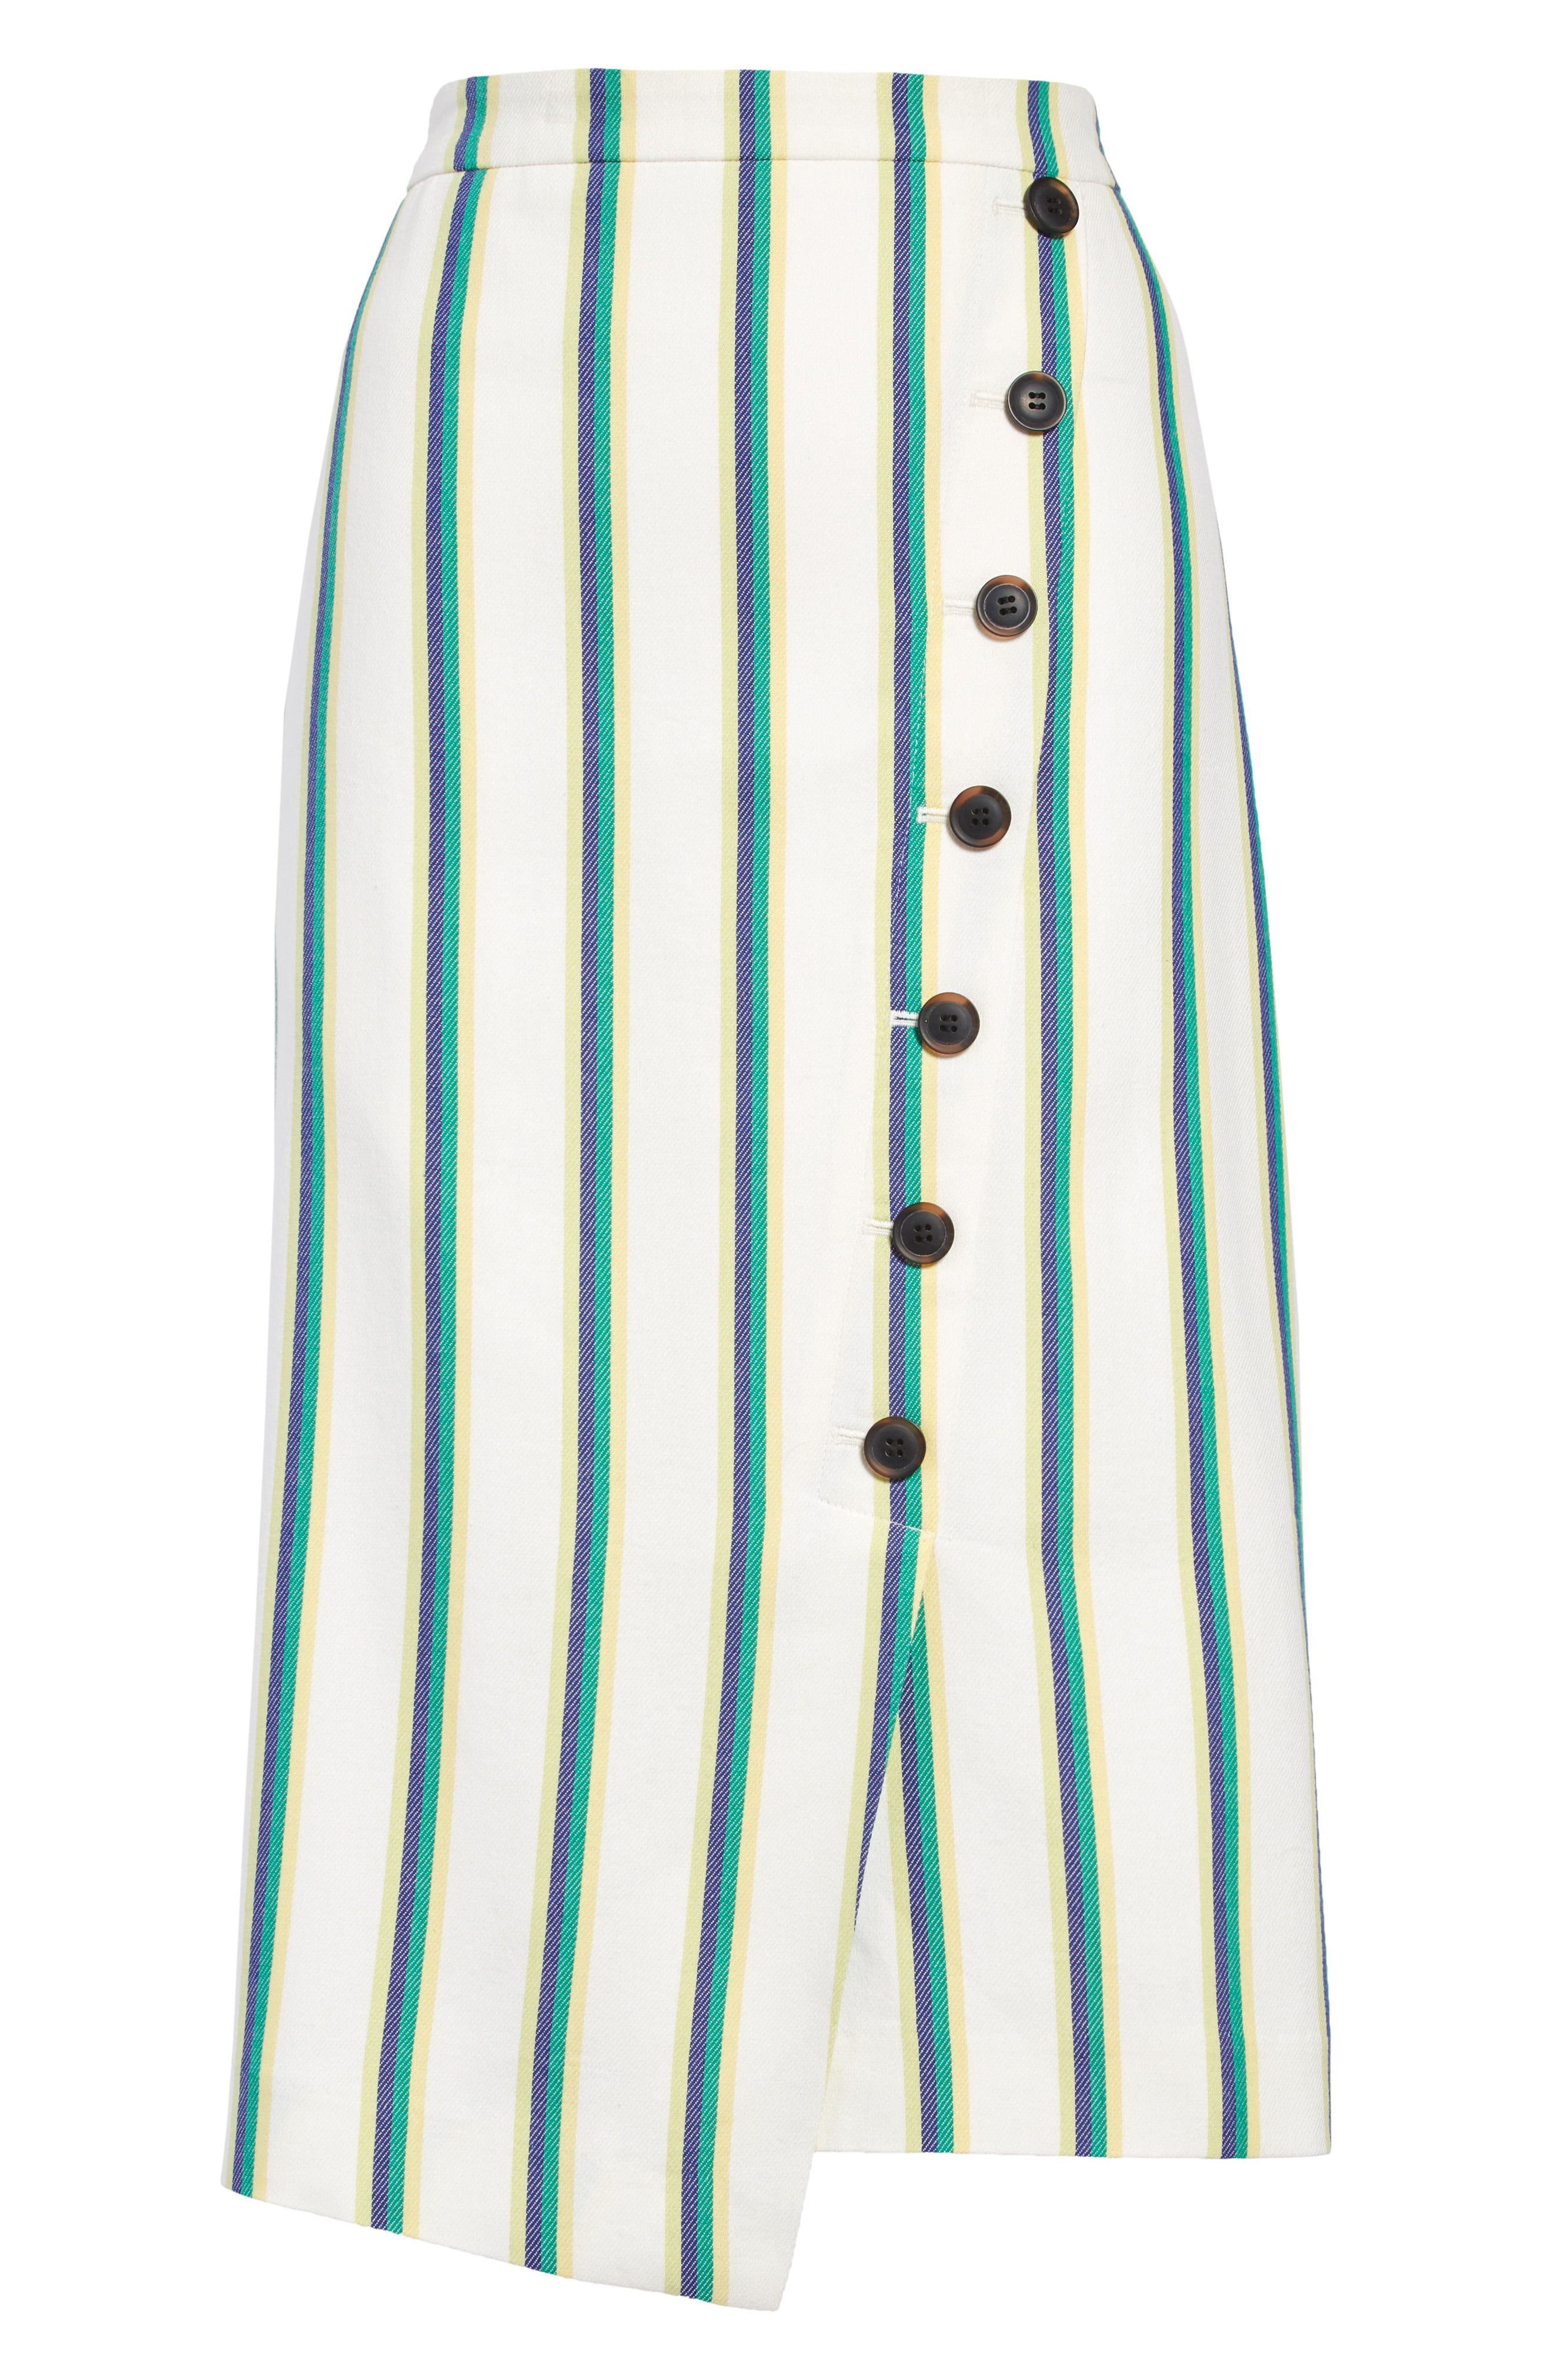 Preppy stripes refine this breezy cotton-rayon skirt in a slim, asymmetrical faux-wrap silhouette with tortoiseshell-patterned buttons at the front. Style Name:Halogen Stripe Faux Wrap Pencil Skirt (Regular & Petite). Style Number: 5992271. Available in stores.